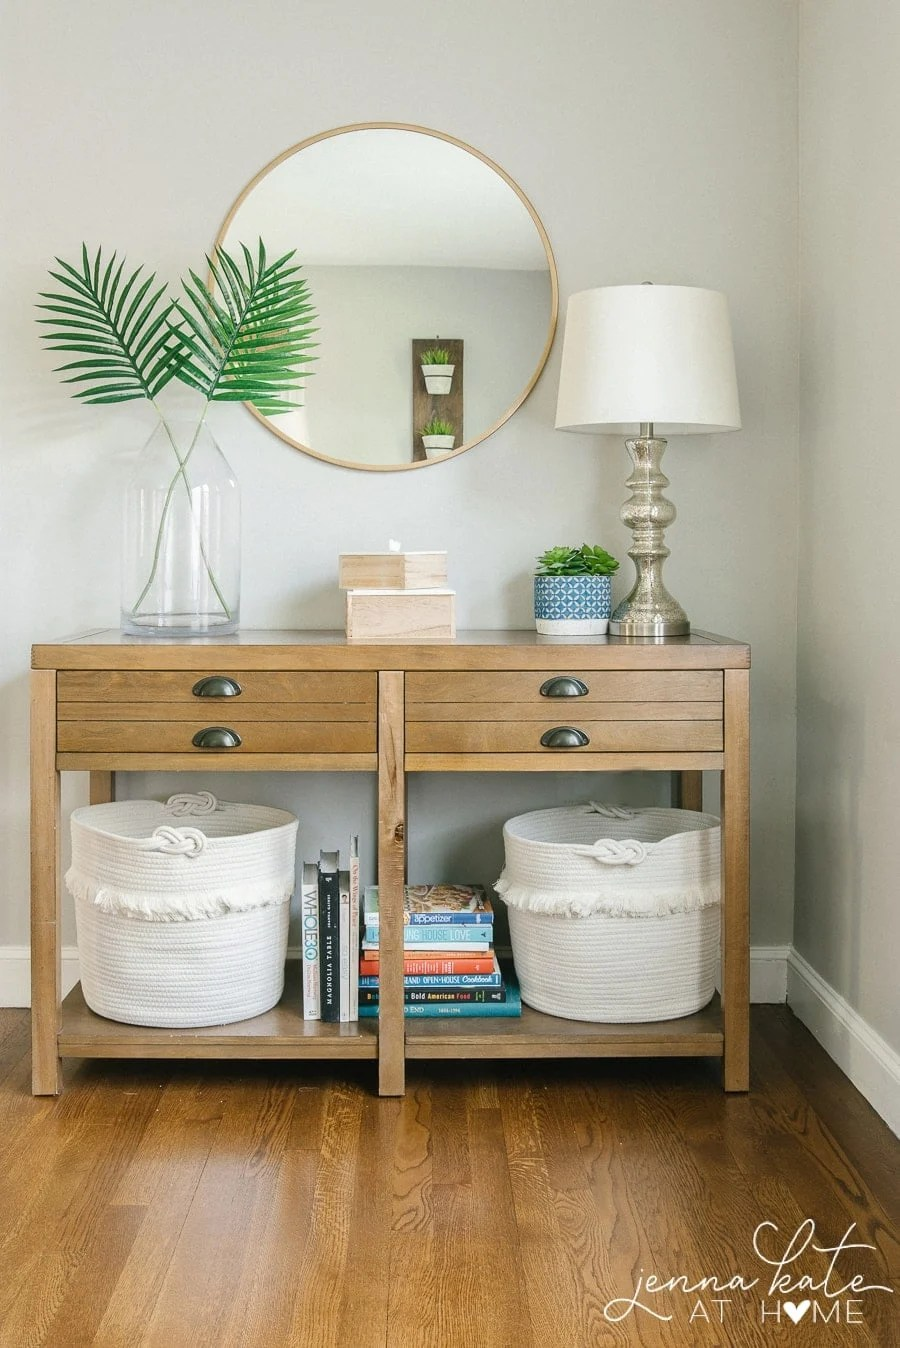 living room console table with toy storage baskets underneath is a great way to organize a small space